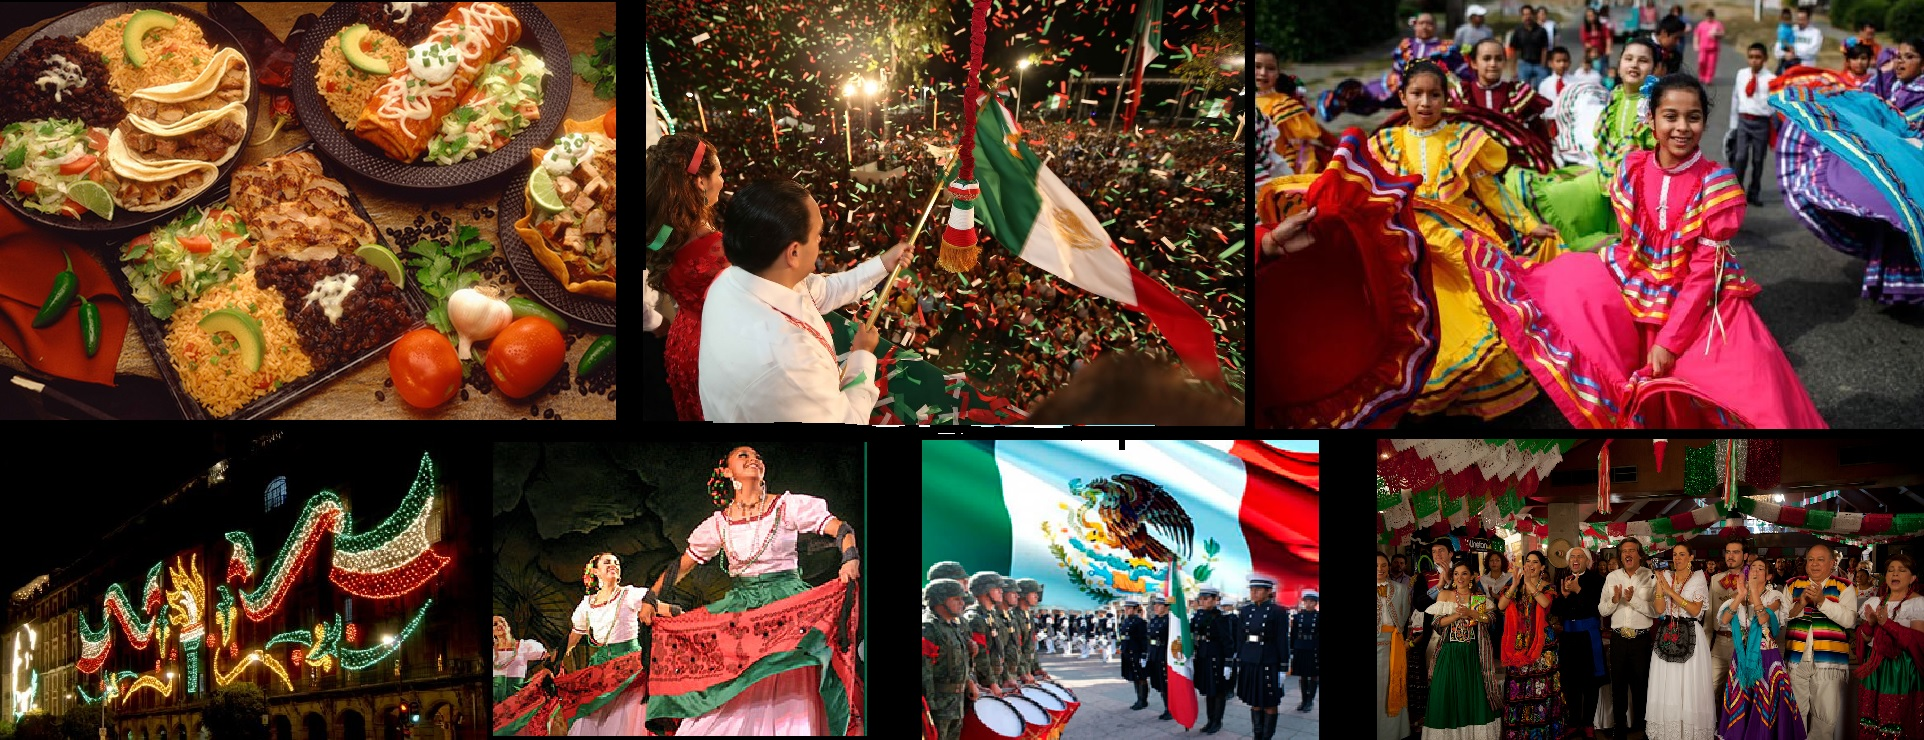 Grito - Mexican Independence Day